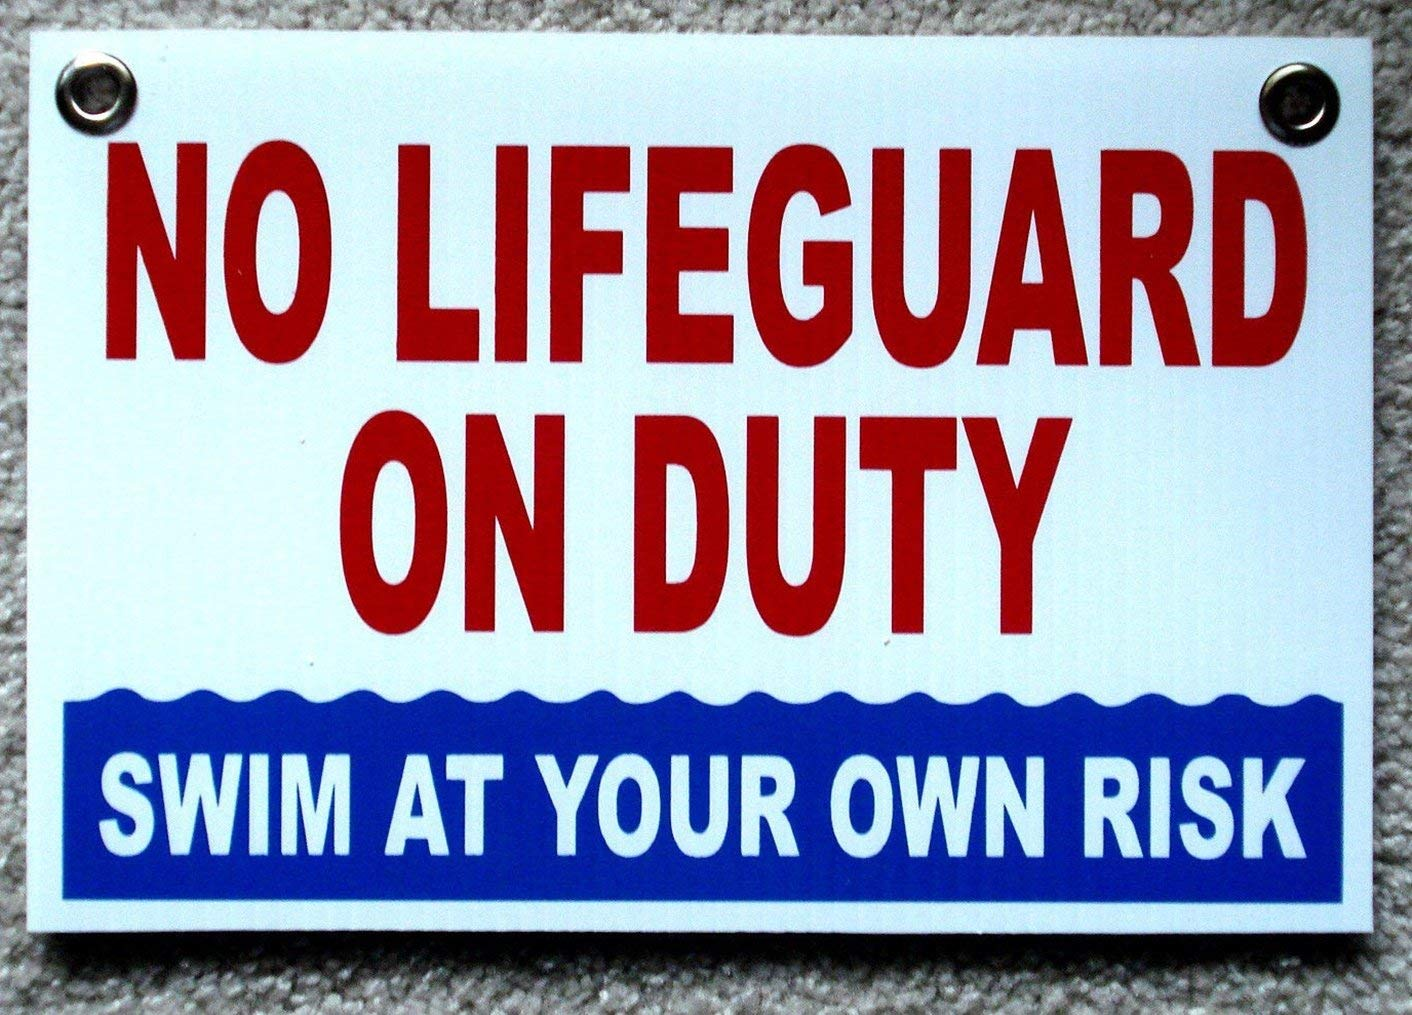 Swimming Pool Signs Swim at Own Risk Spa Sign Caution ...